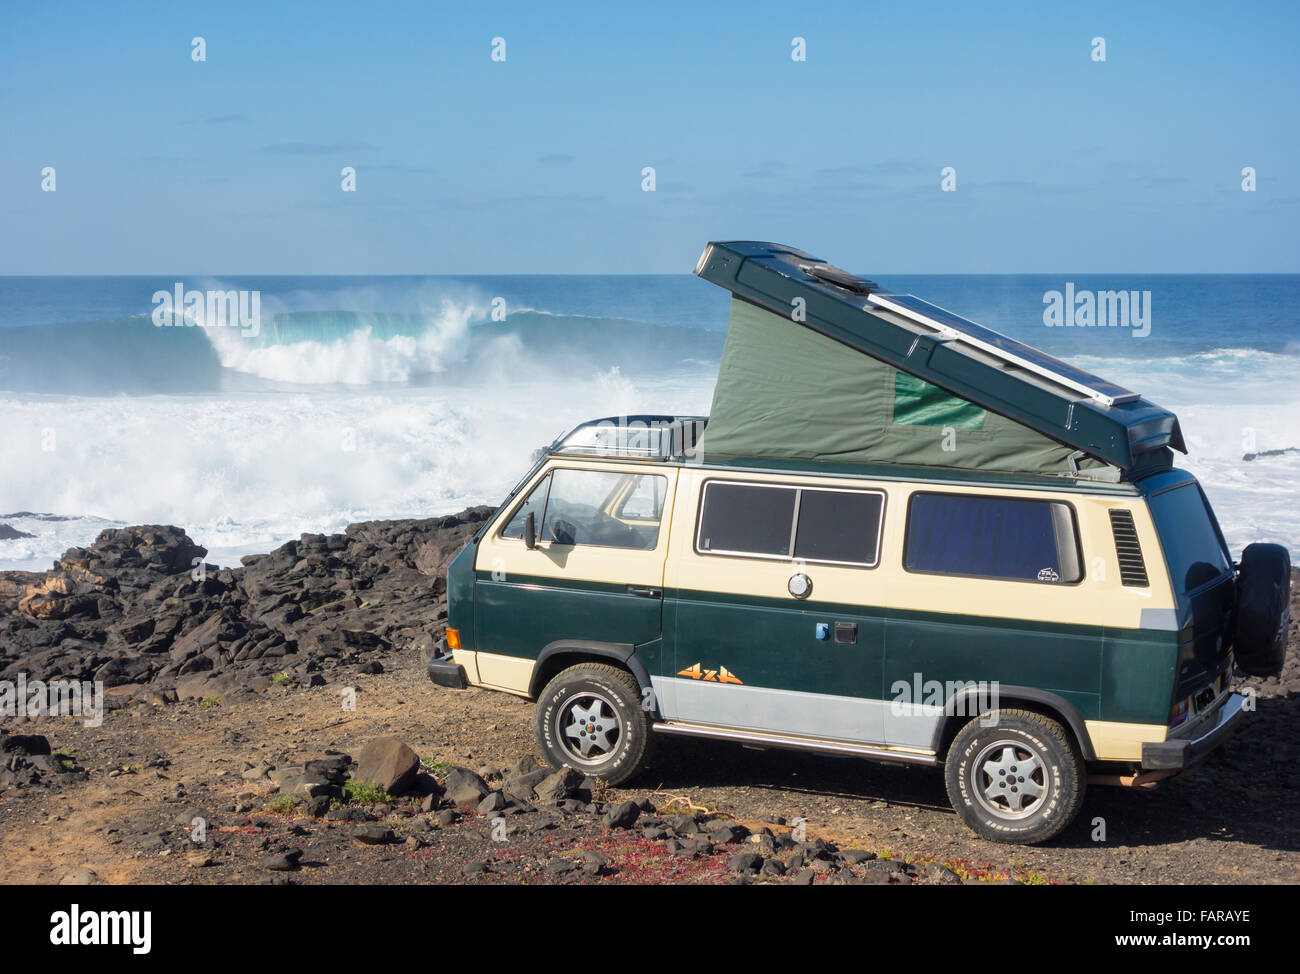 4x4 Vw Camper Van With Solar Panel On Roof Parked On Rocky Surfing Stock Photo Alamy